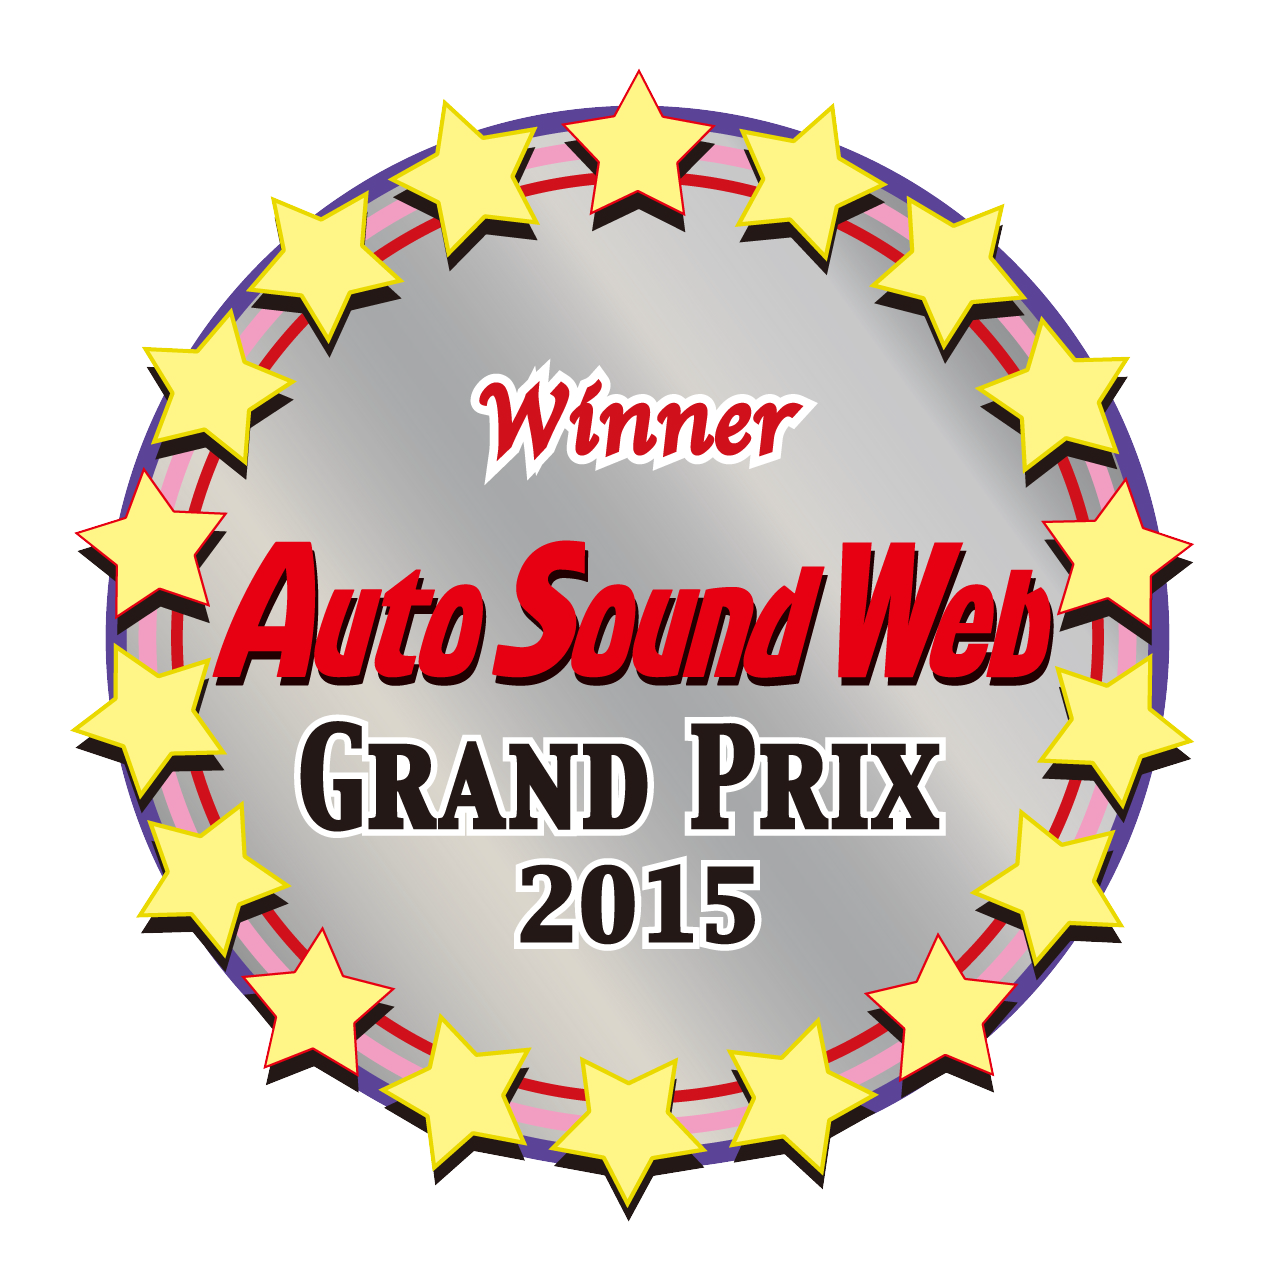 BRAX GX2400 - Auto Sound Web Grand Prix 2015